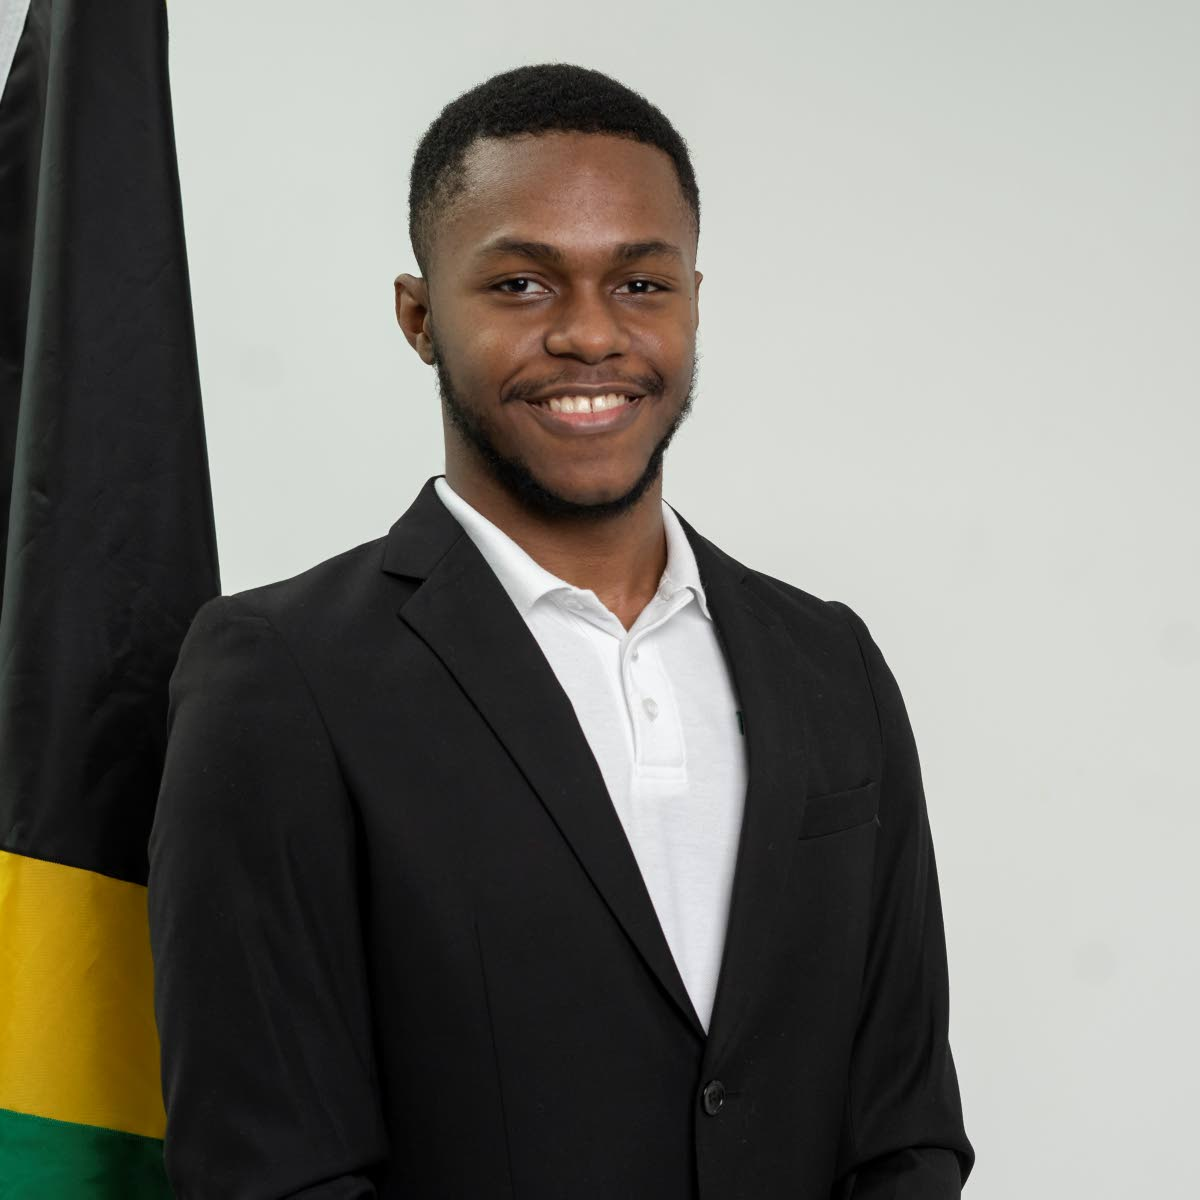 Young innovators assisting Jamaica's COVID-19 fight